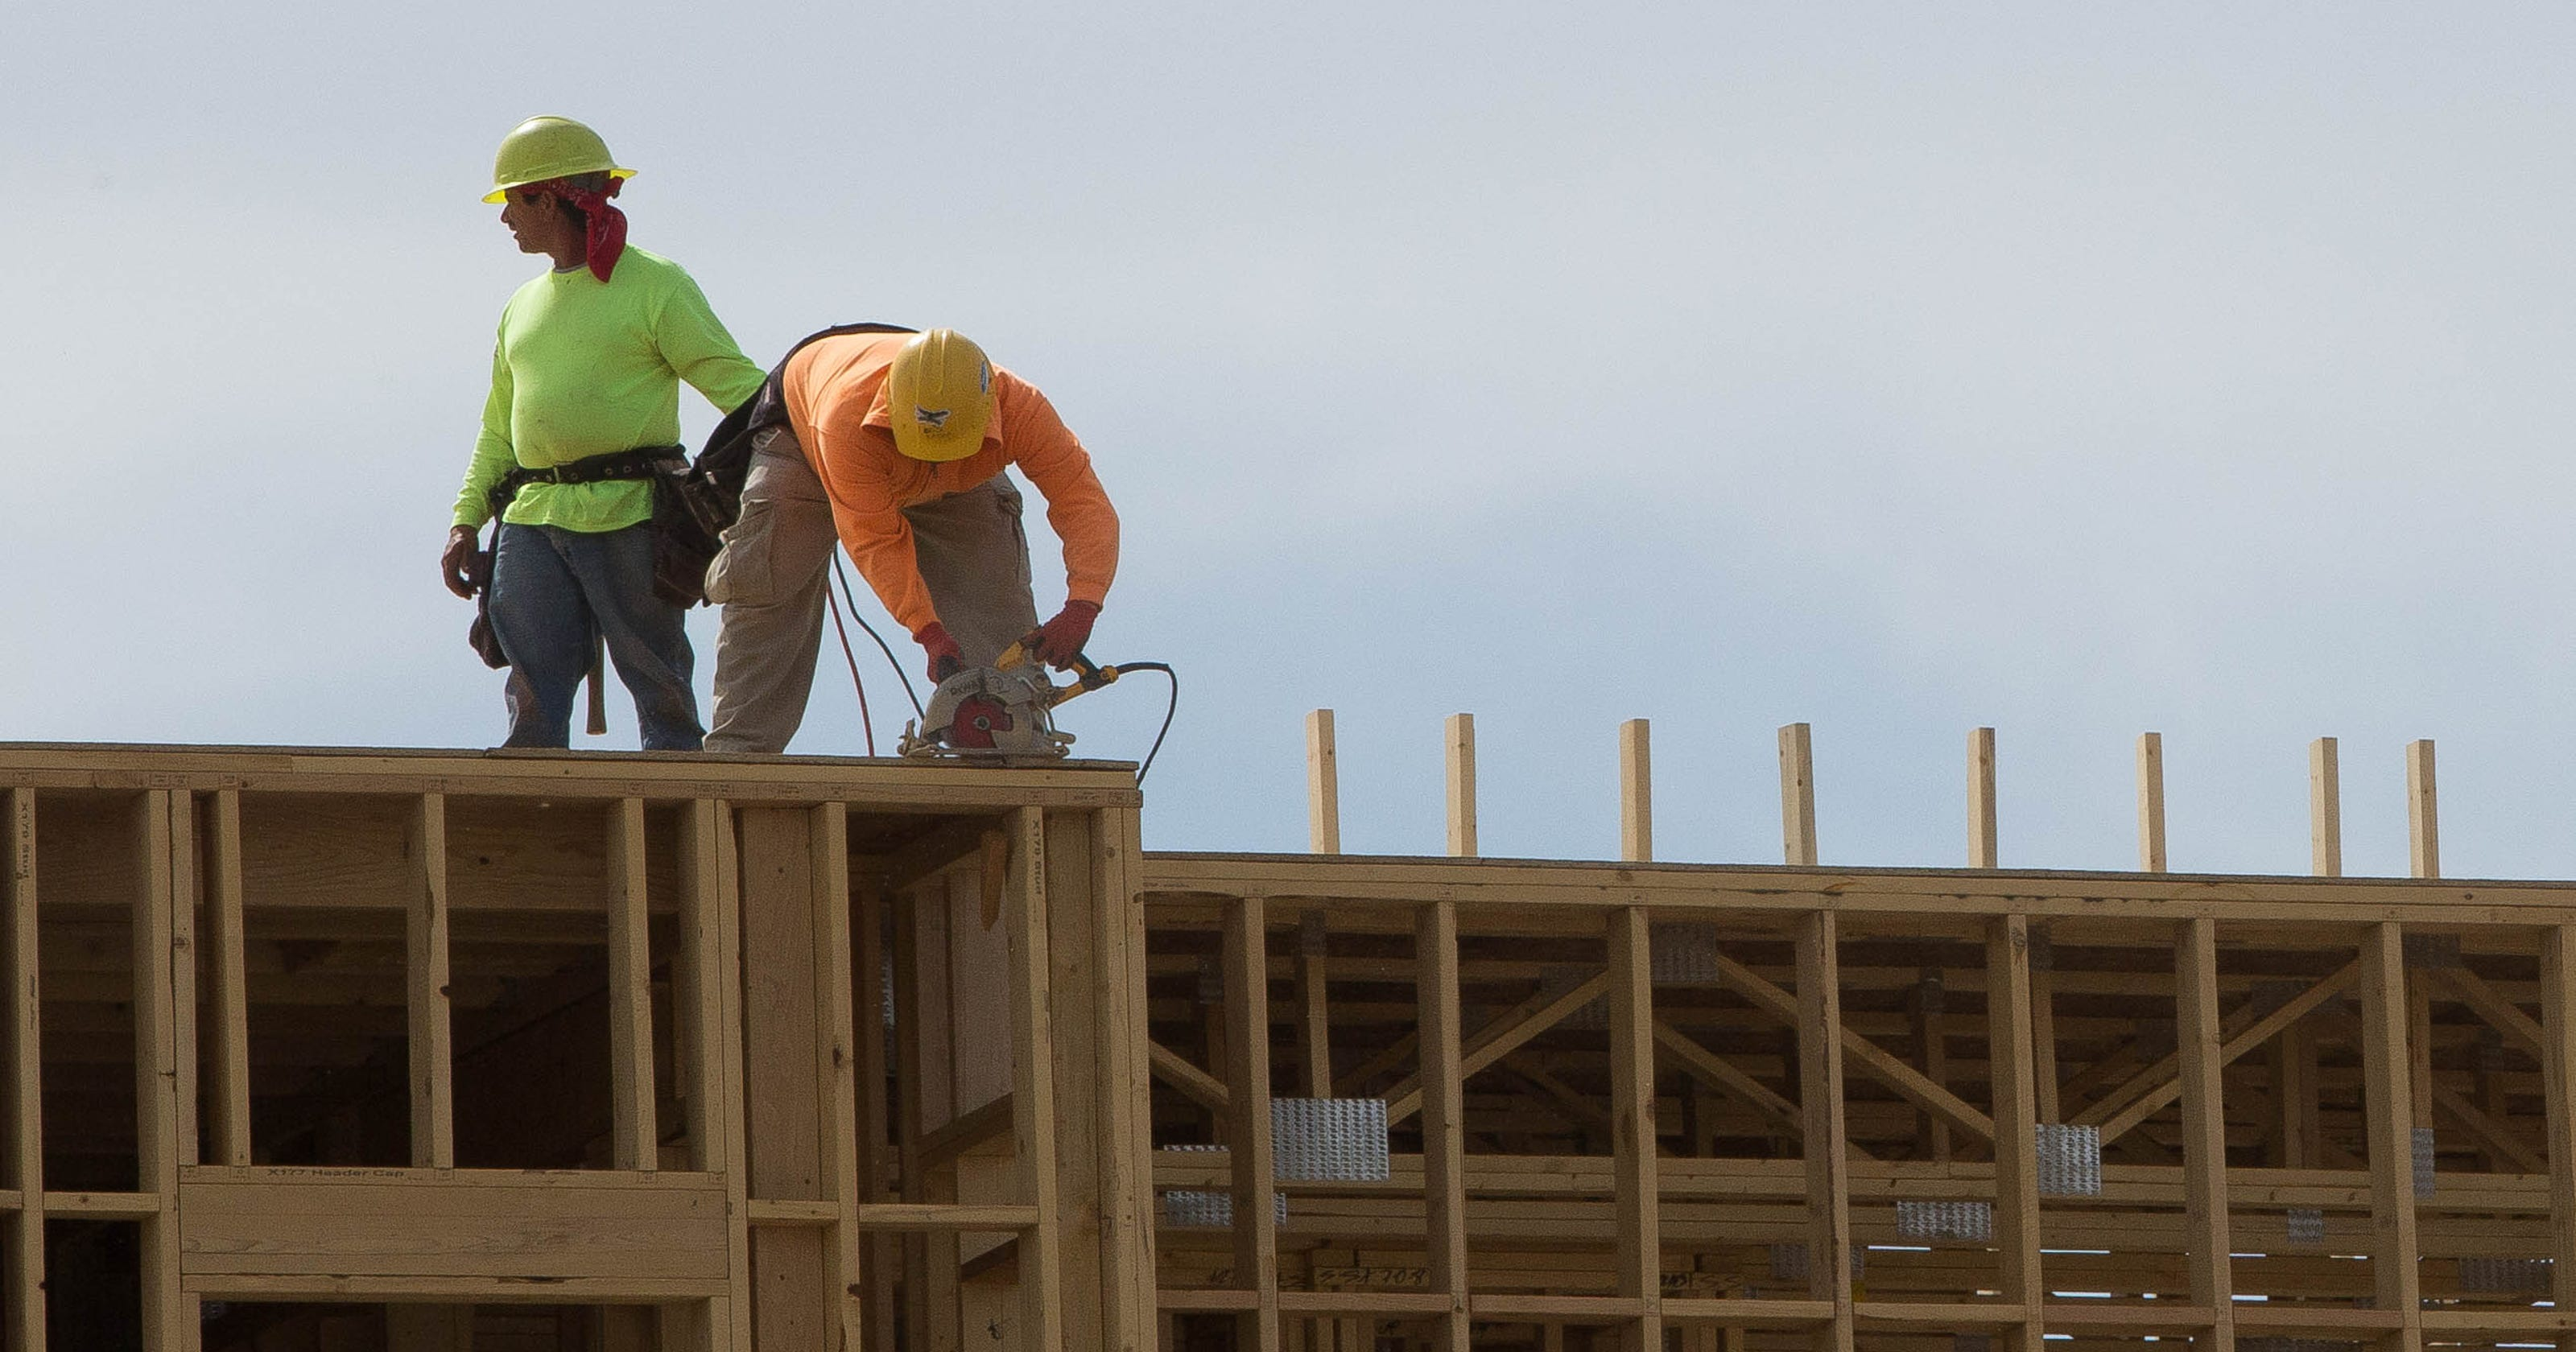 Construction jobs in New Mexico has reached highest growth since 2009